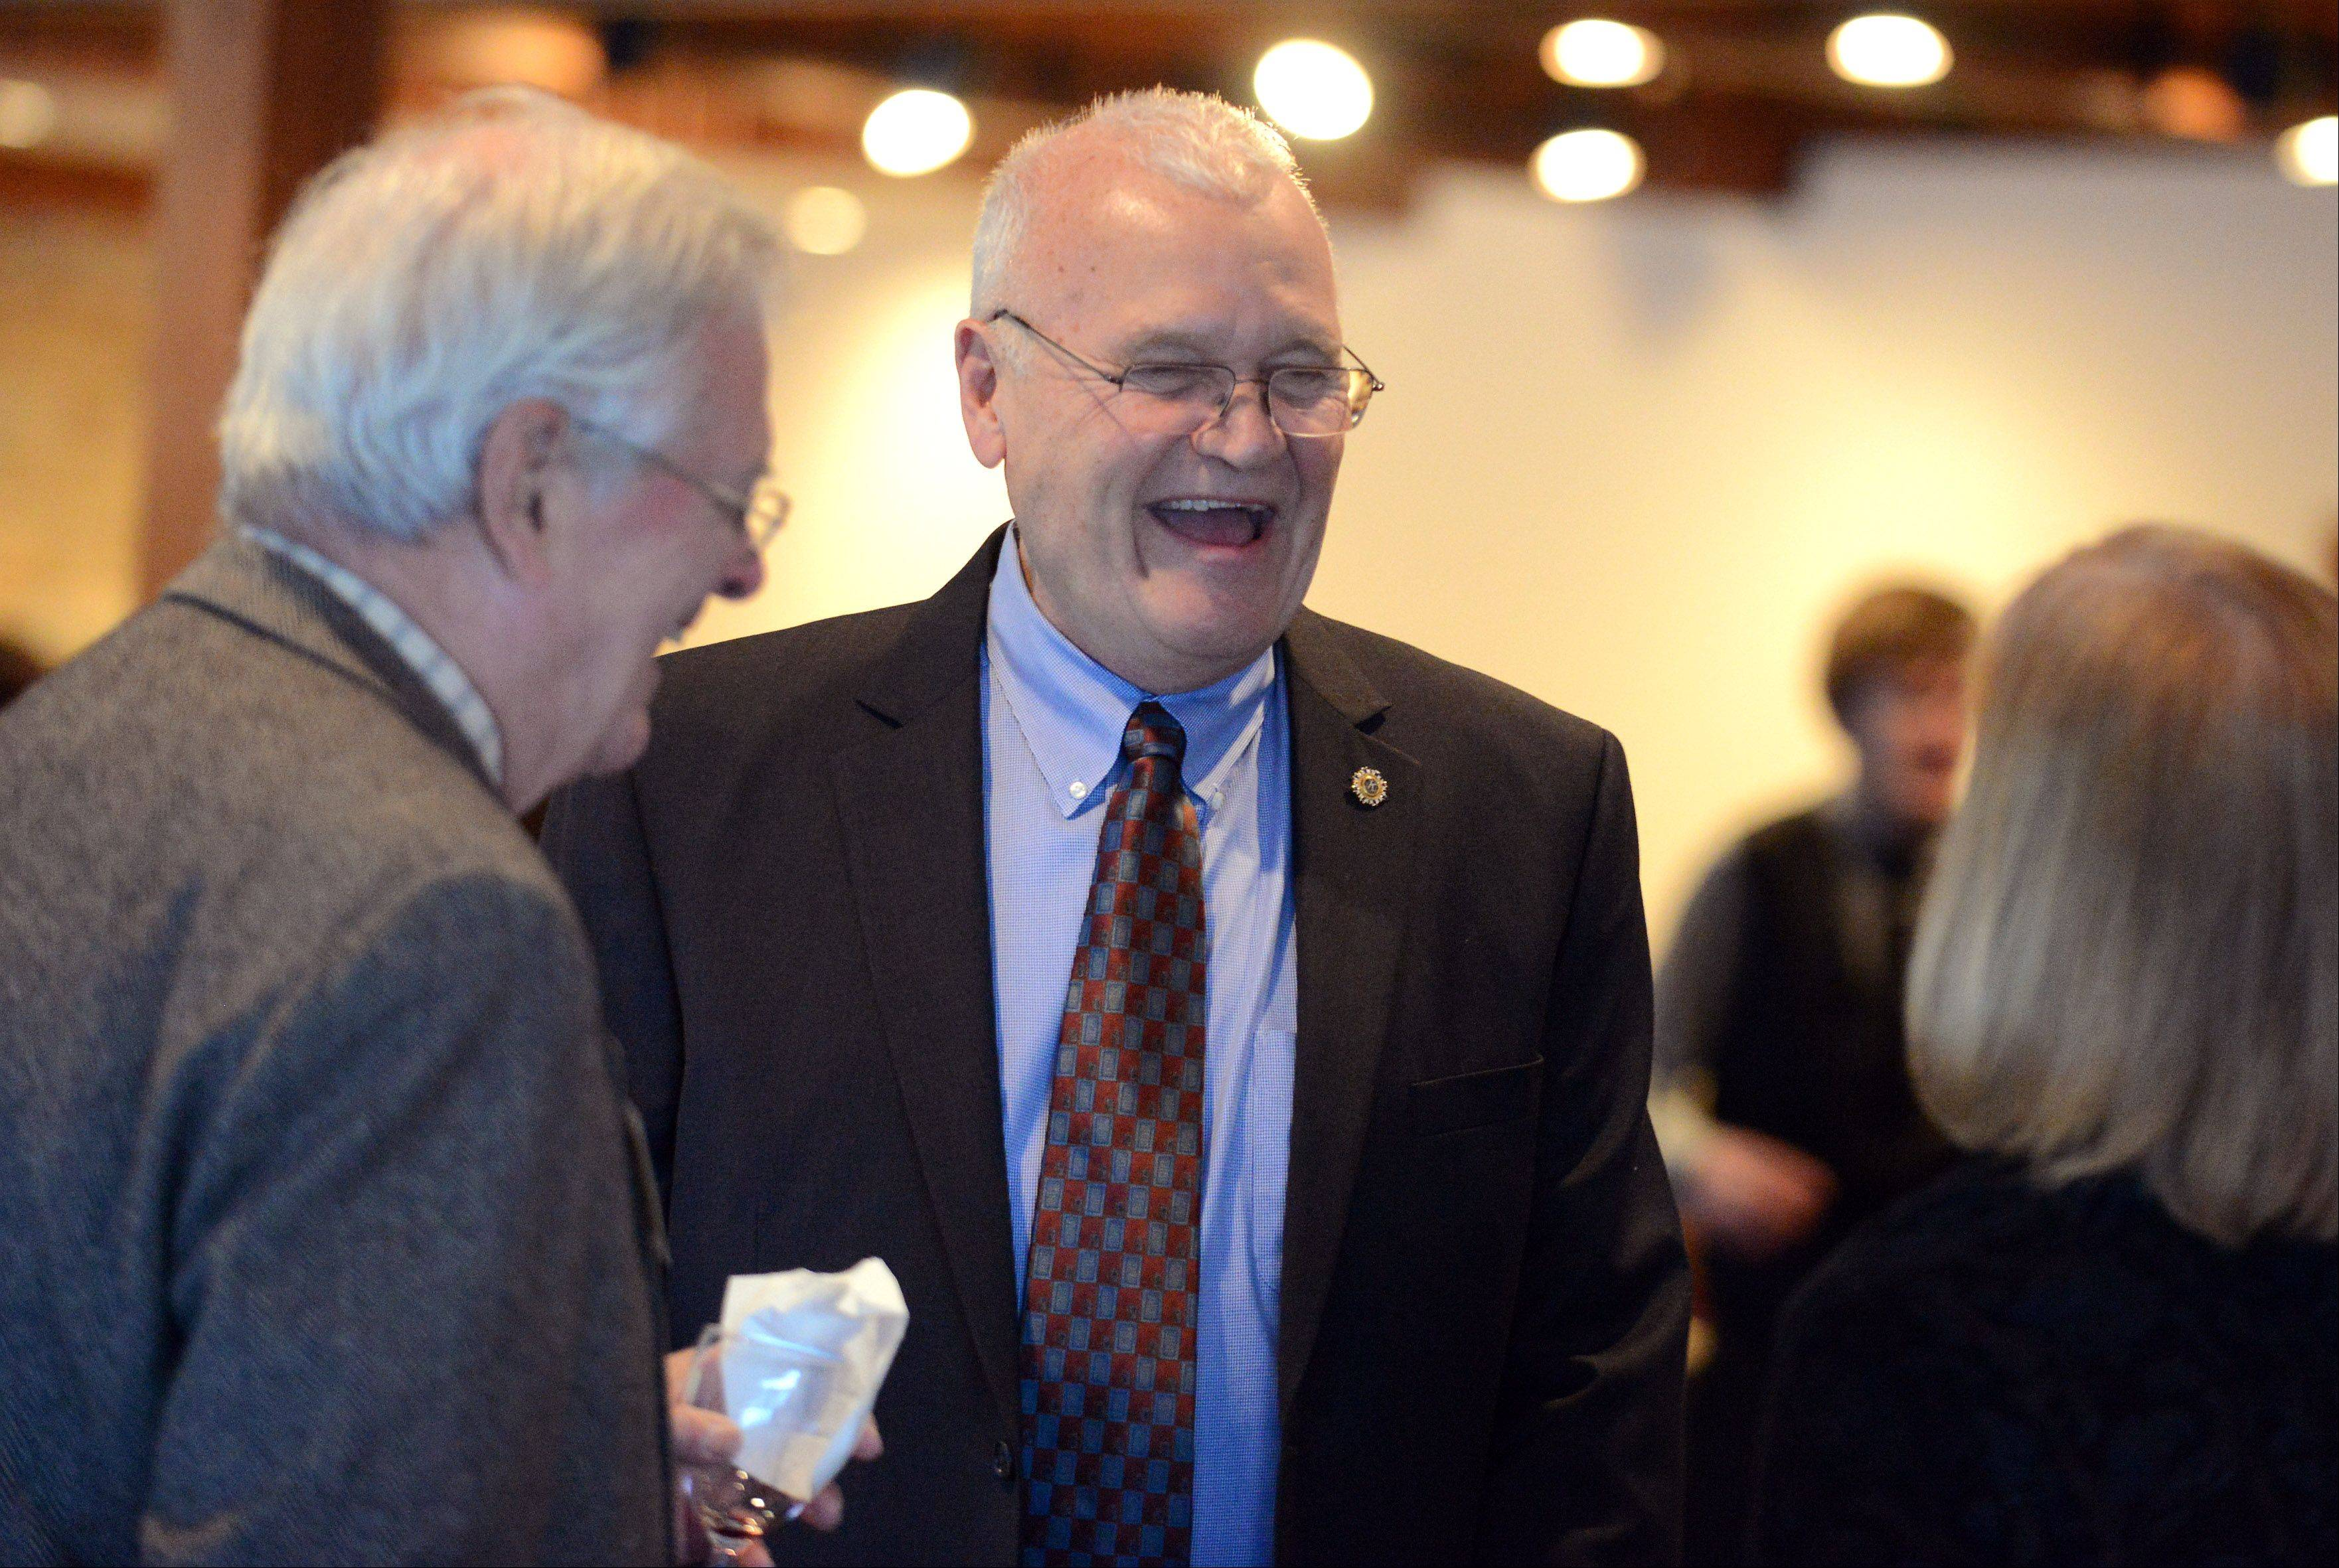 Fred Norris laughs as he is greeted by Bob and Diana MacNeille of St. Charles after being announced as the winner of the 29th annual William D. Barth Award in Geneva Thursday. The award is given by TriCity Family Services.